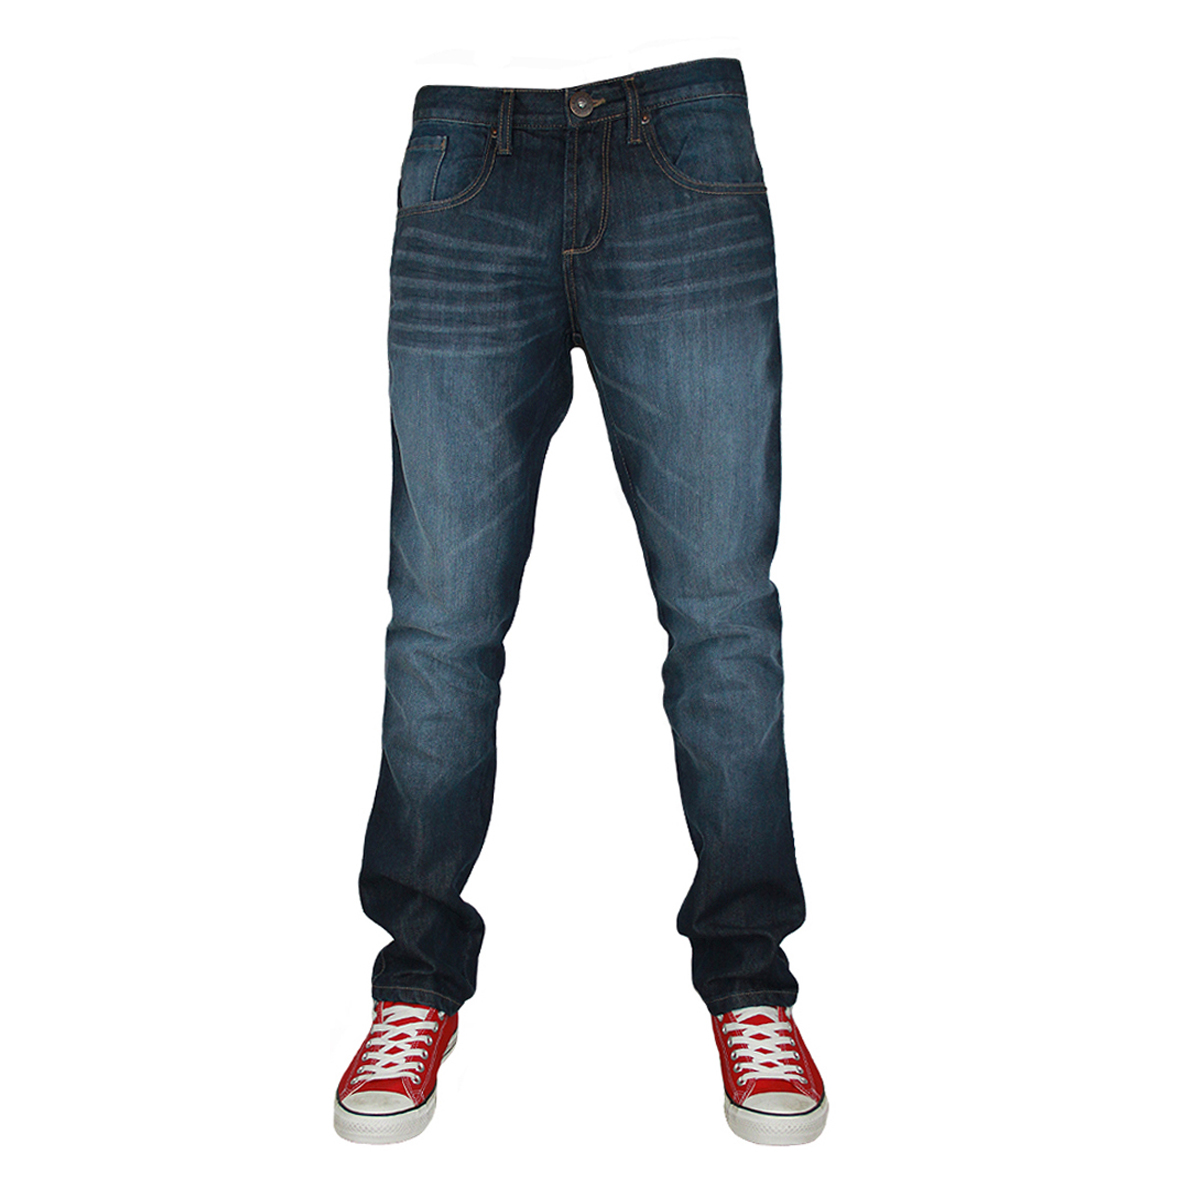 BB MENS CONSPIRACY JEANS C603590 DESIGNER SKINNY FIT JEANS ALL ...